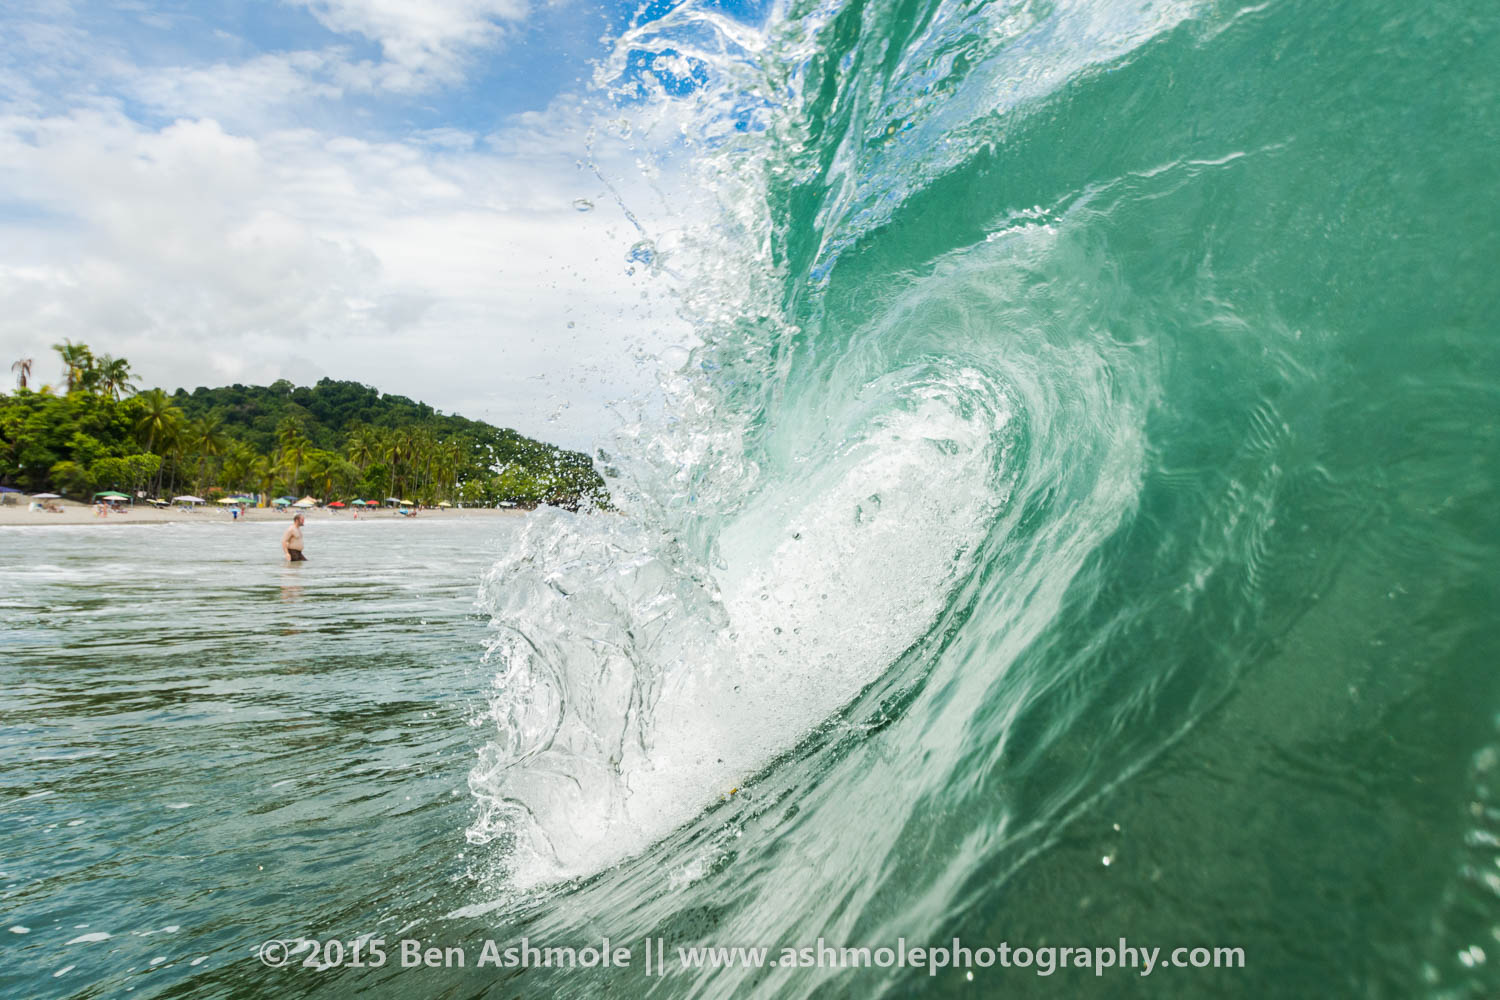 Turqoise Wave, Manuel Antonio National Park, Costa Rica